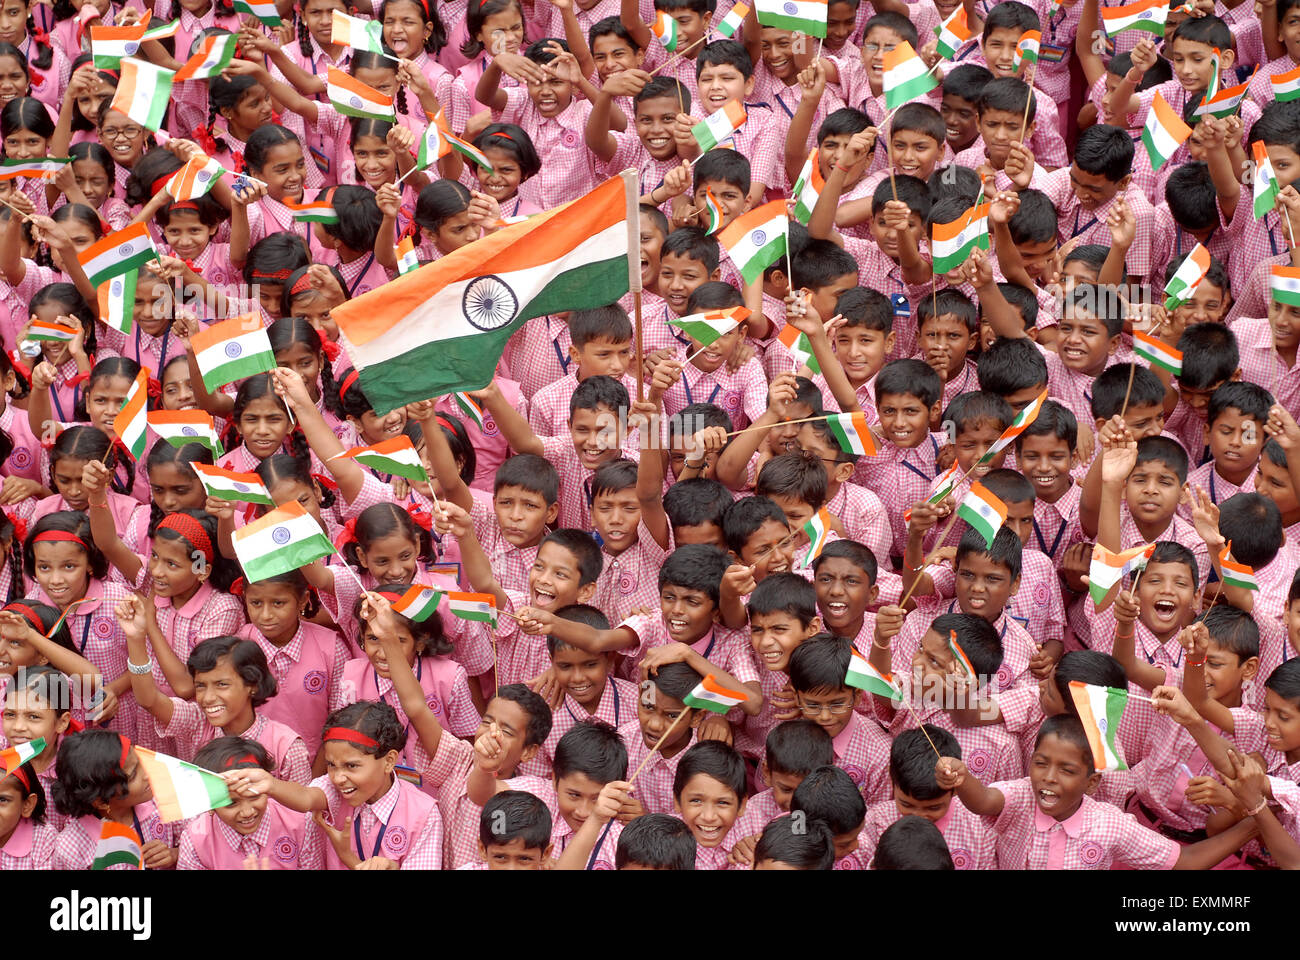 School children celebrate Indian Independence Day by ...